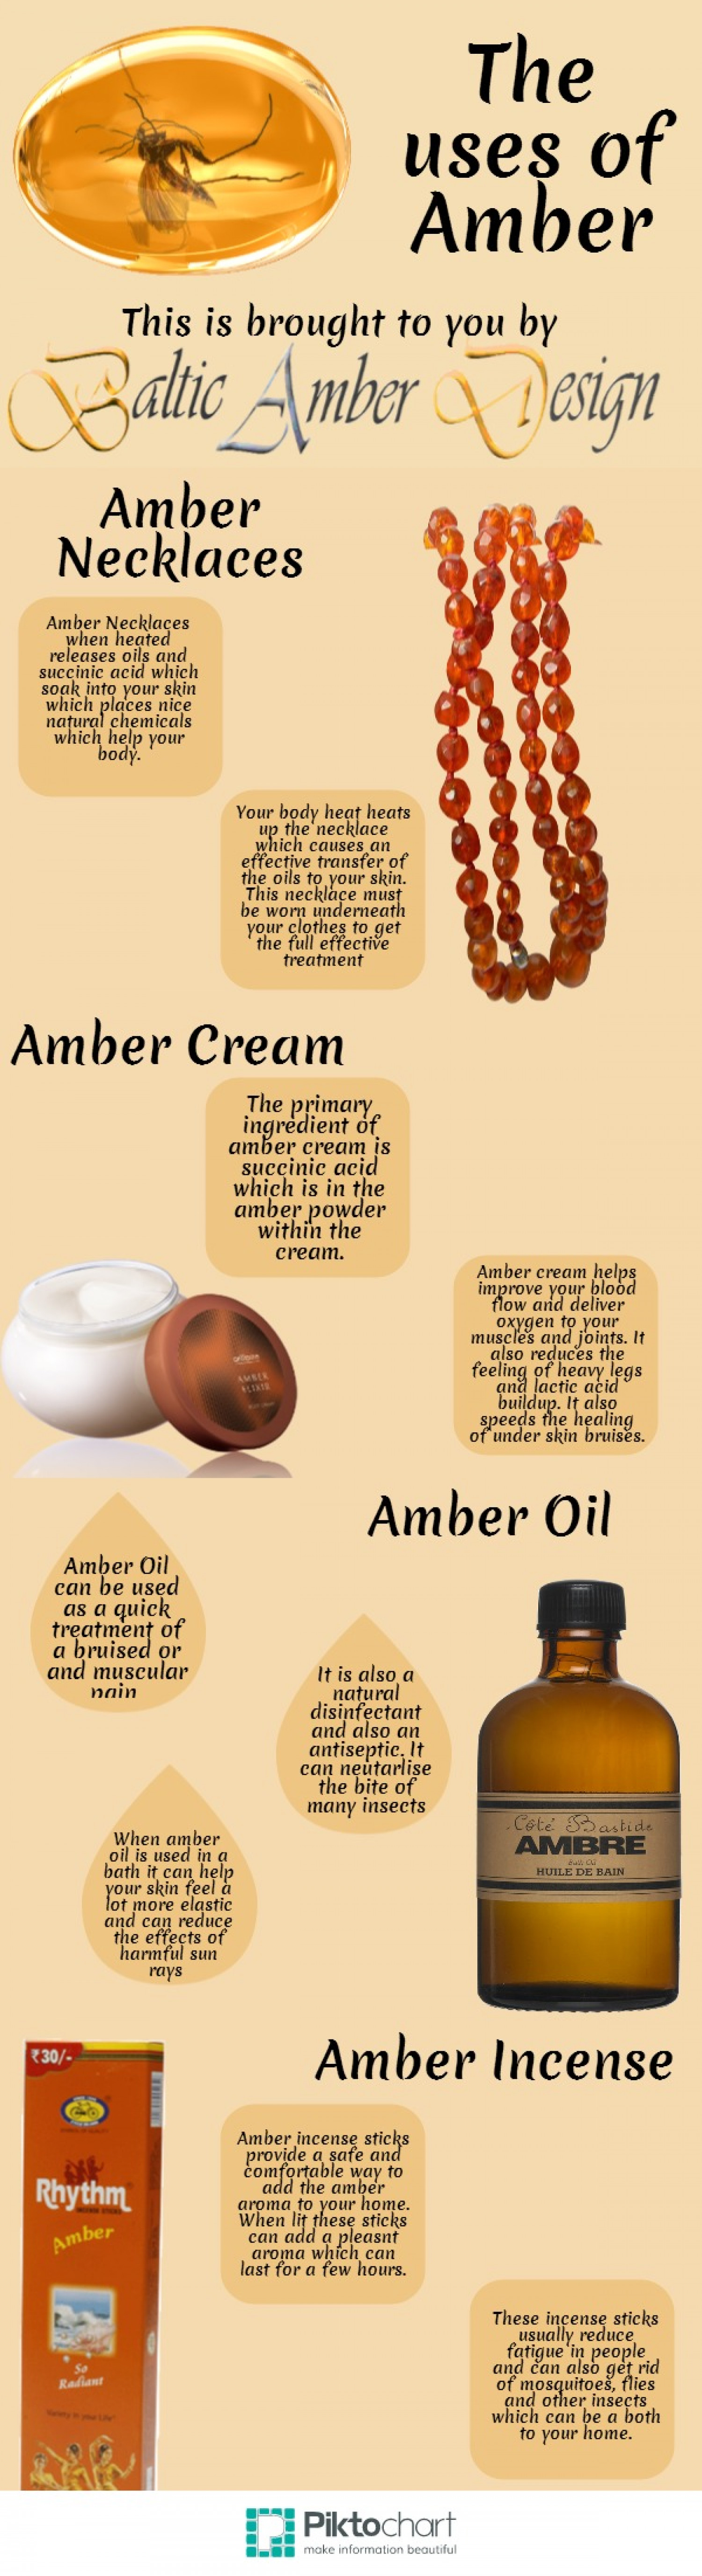 The uses of Amber Infographic